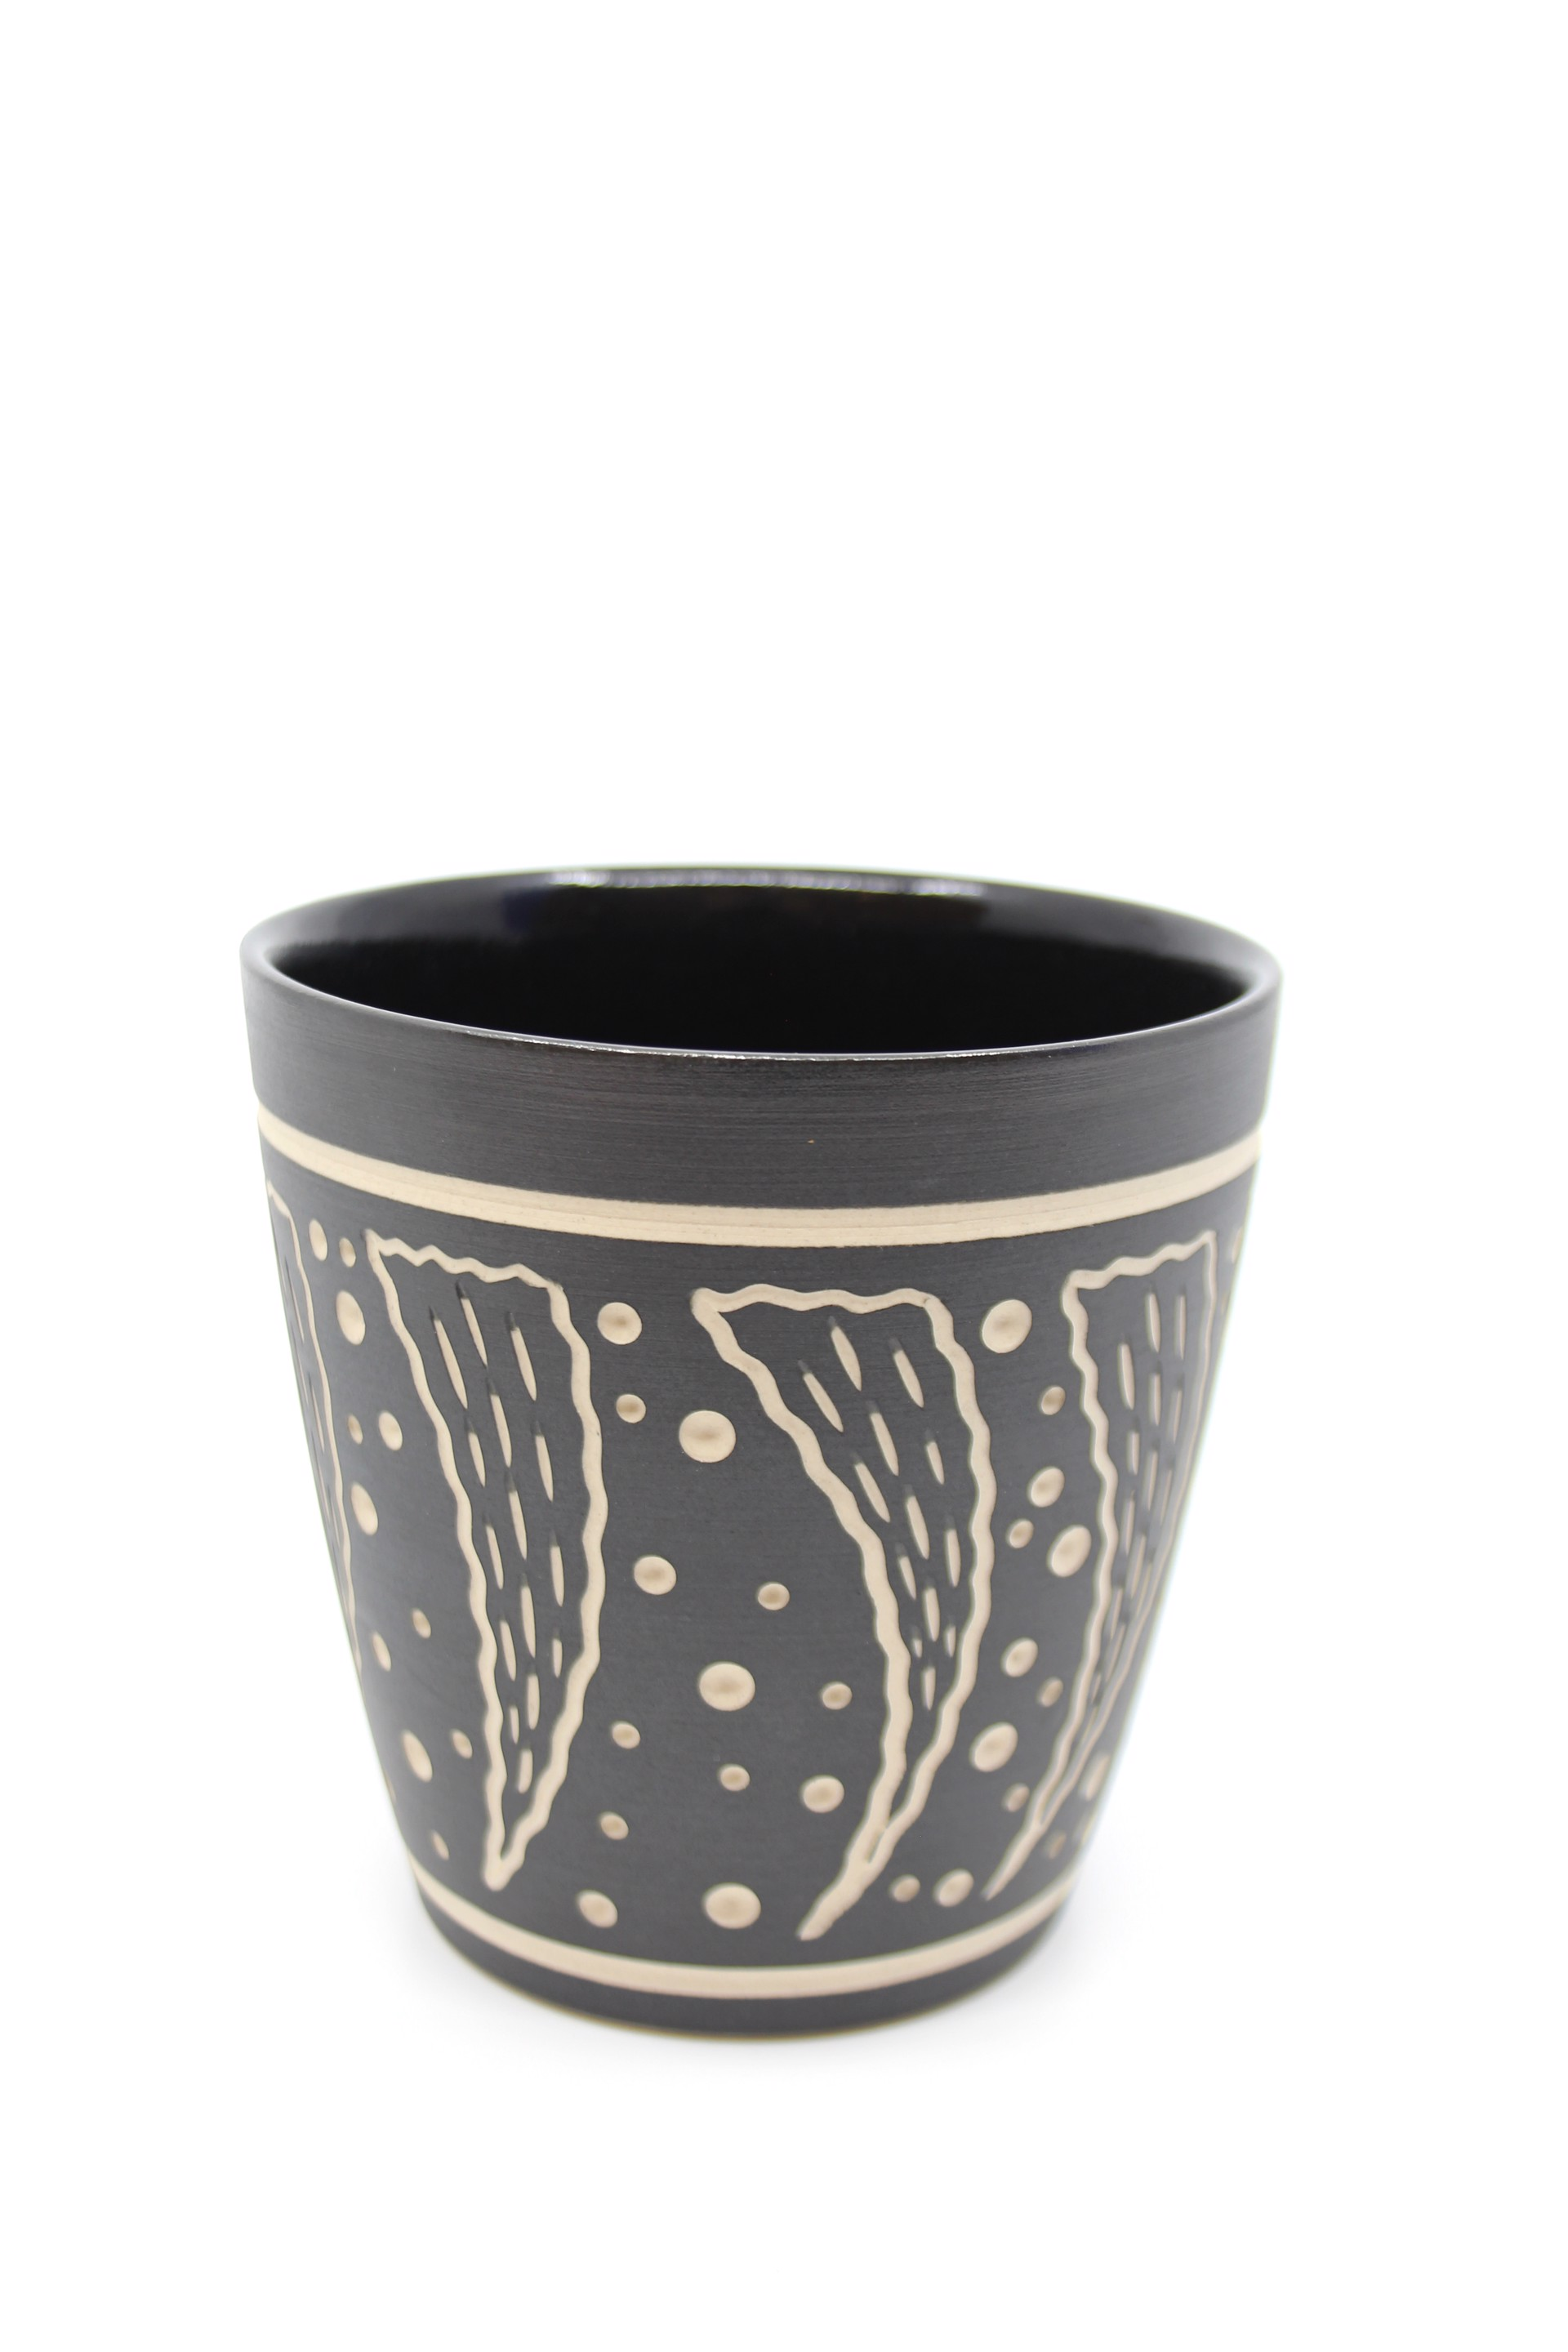 Black Cup by Chris Casey